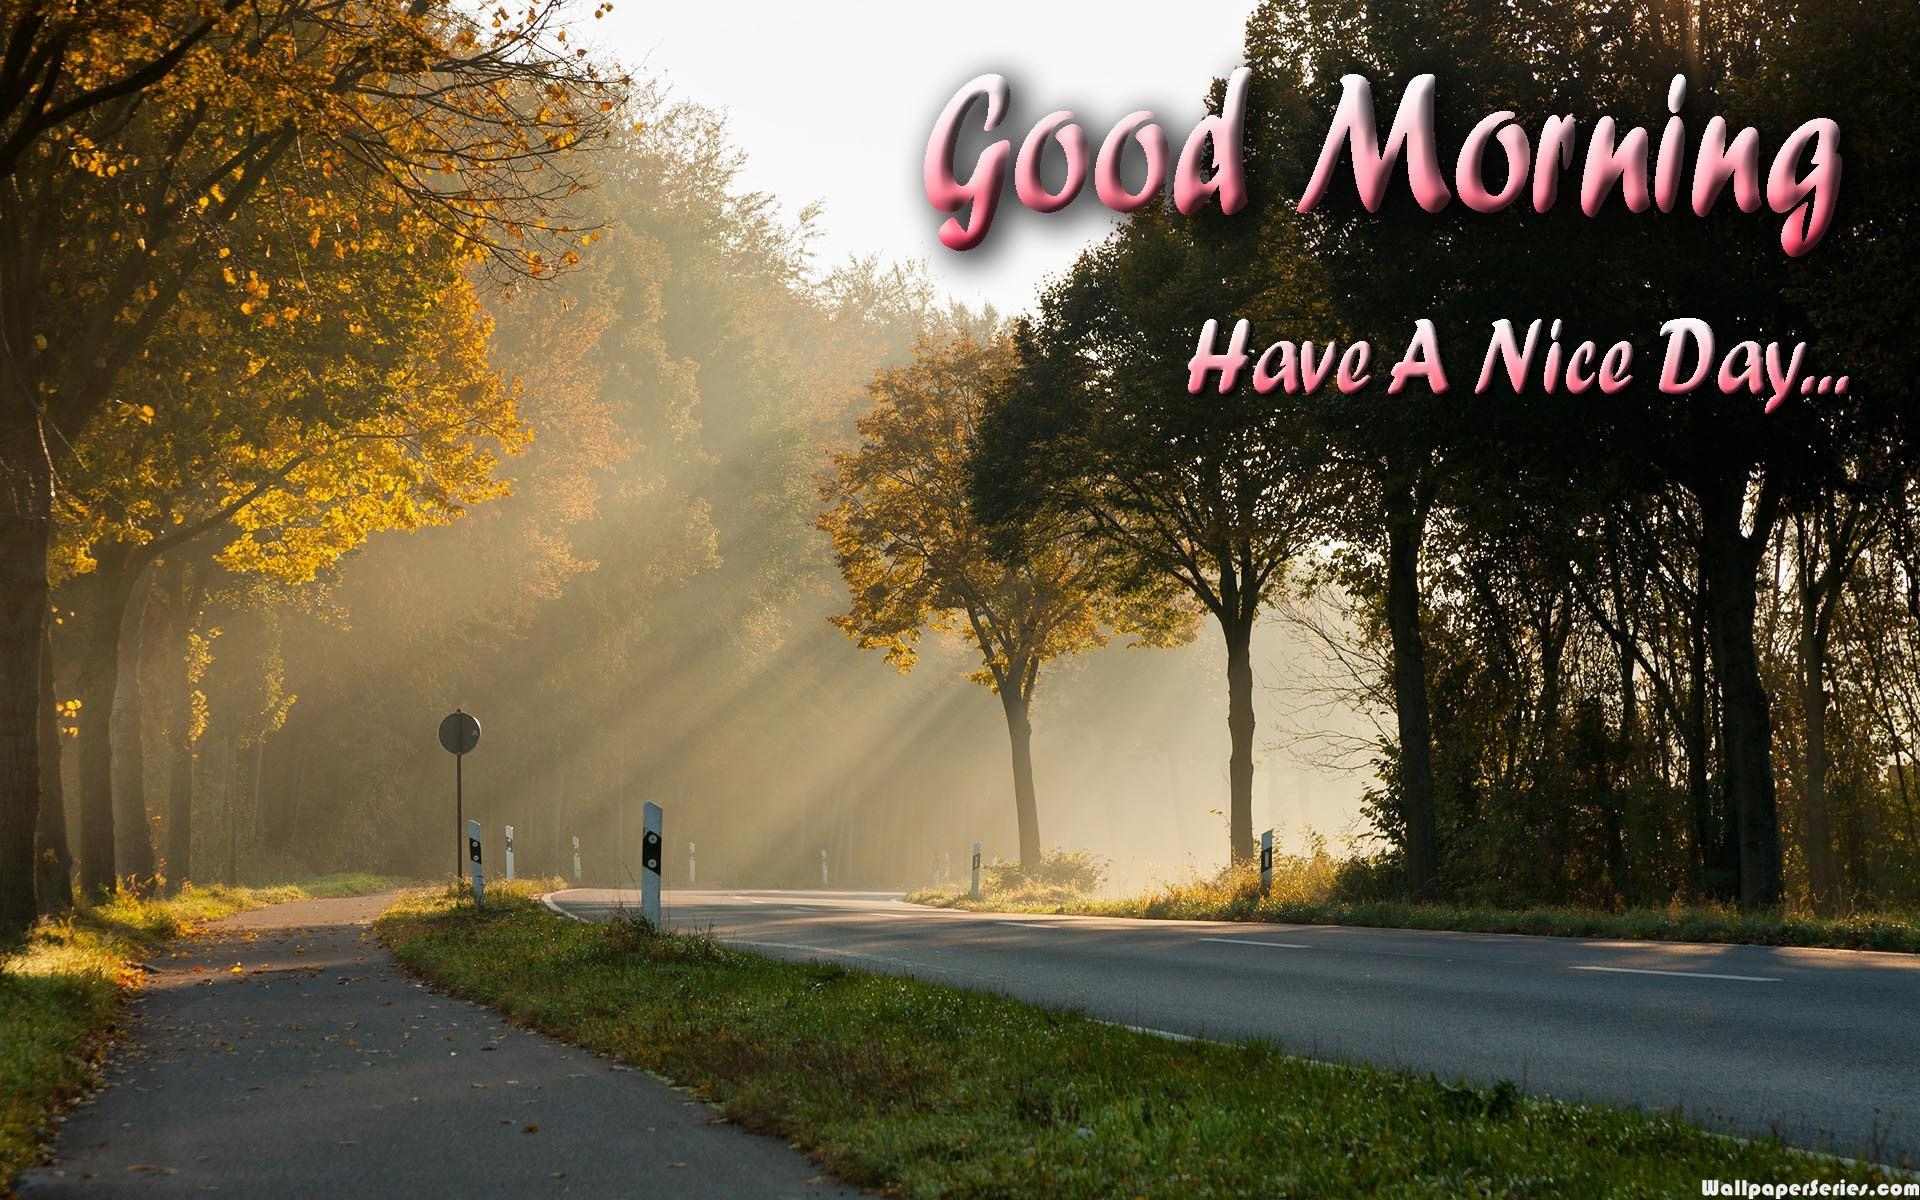 Hd Lovely Good Morning Have A Nice Day Wallpaper Beautiful Good Morning Have A Nice Day 1920x1200 Download Hd Wallpaper Wallpapertip